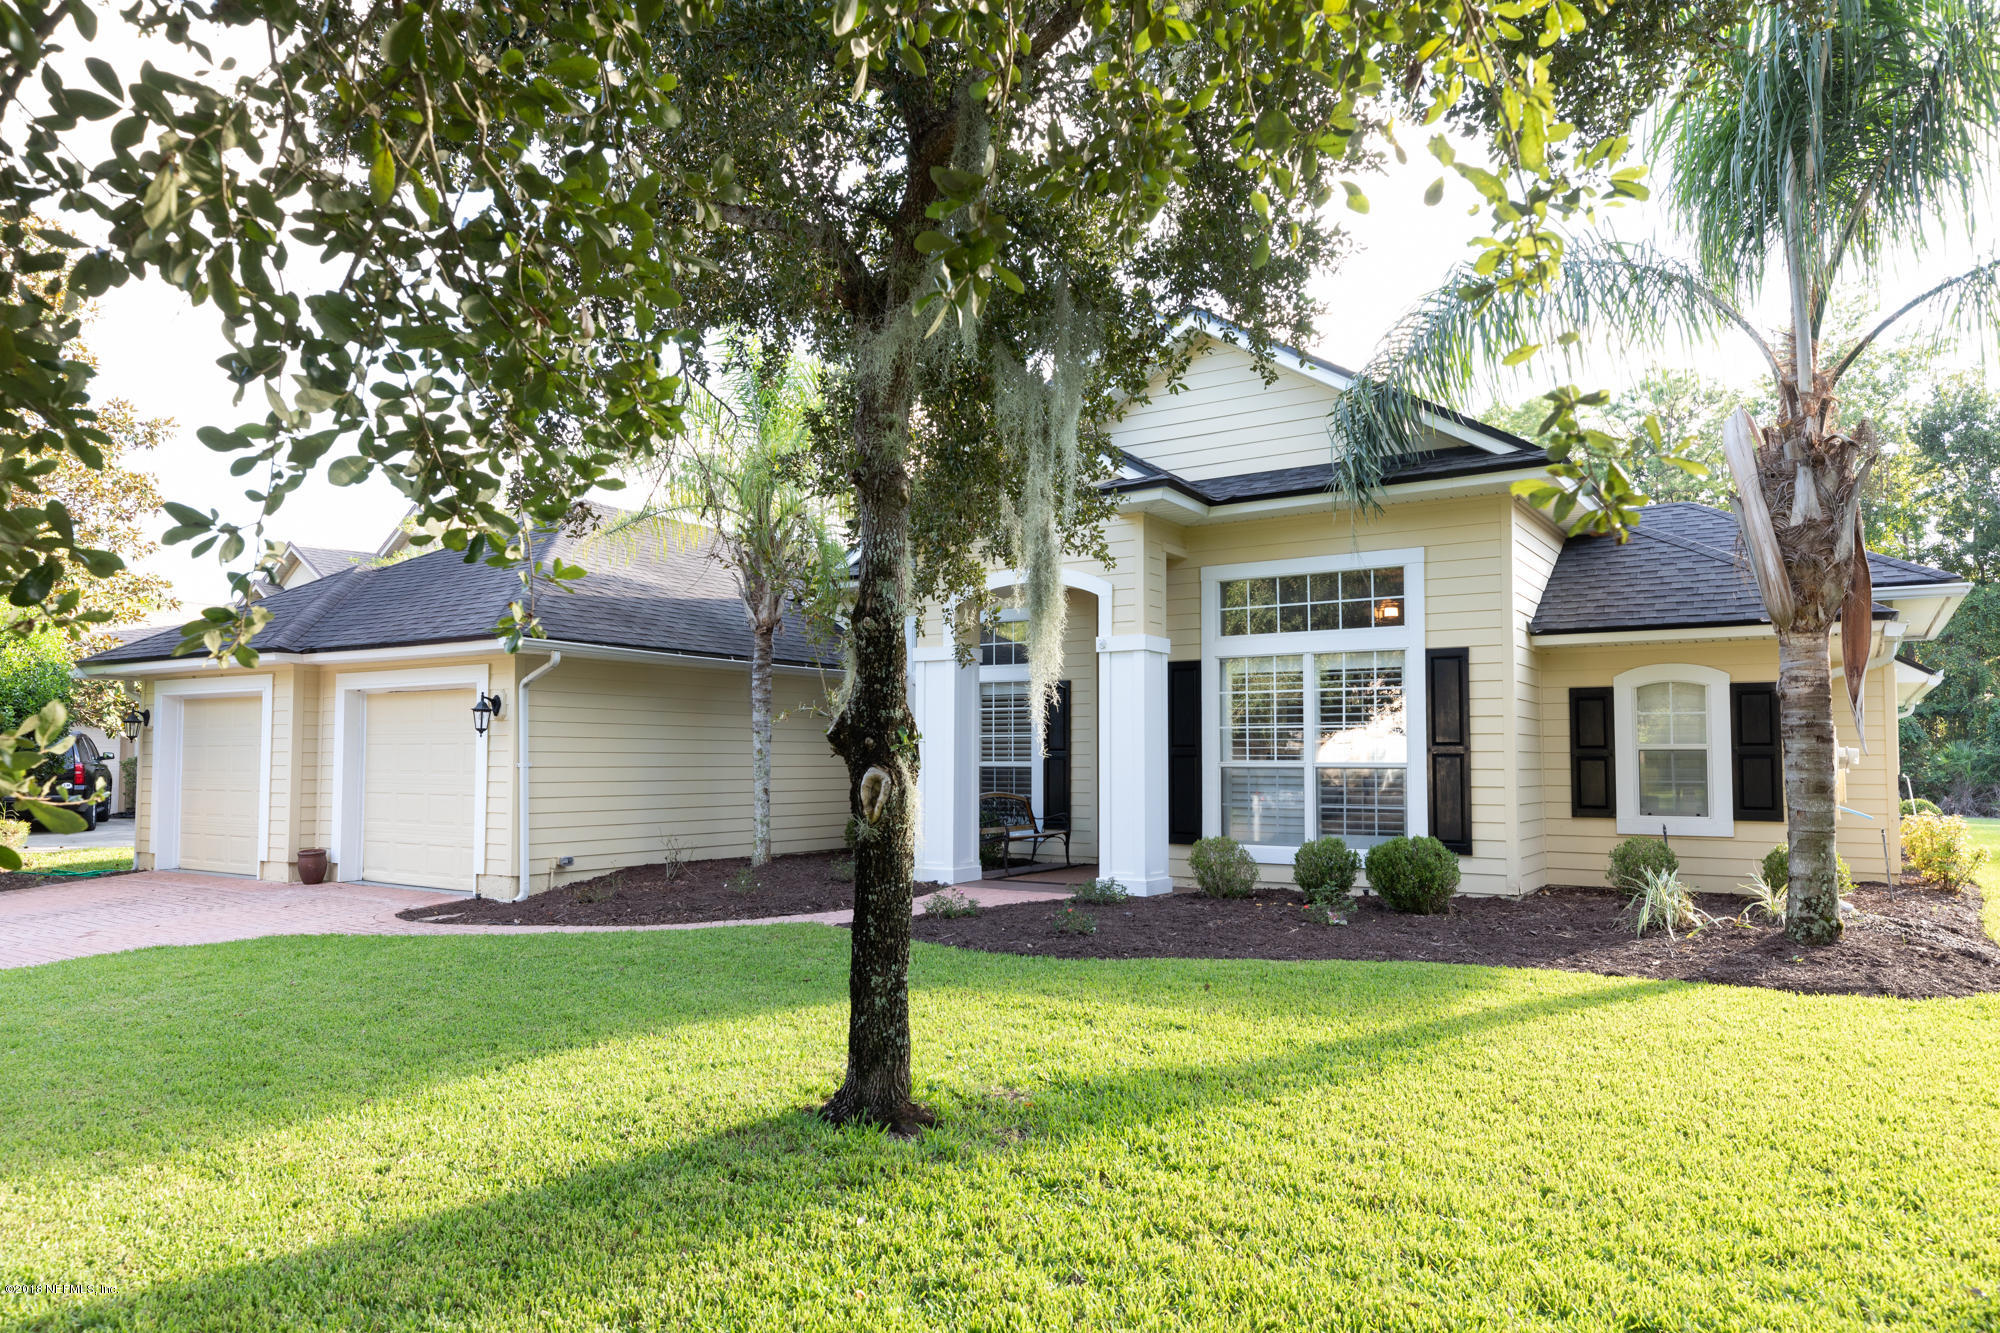 764 CYPRESS CROSSING, ST AUGUSTINE, FLORIDA 32095, 4 Bedrooms Bedrooms, ,2 BathroomsBathrooms,Residential - single family,For sale,CYPRESS CROSSING,969700